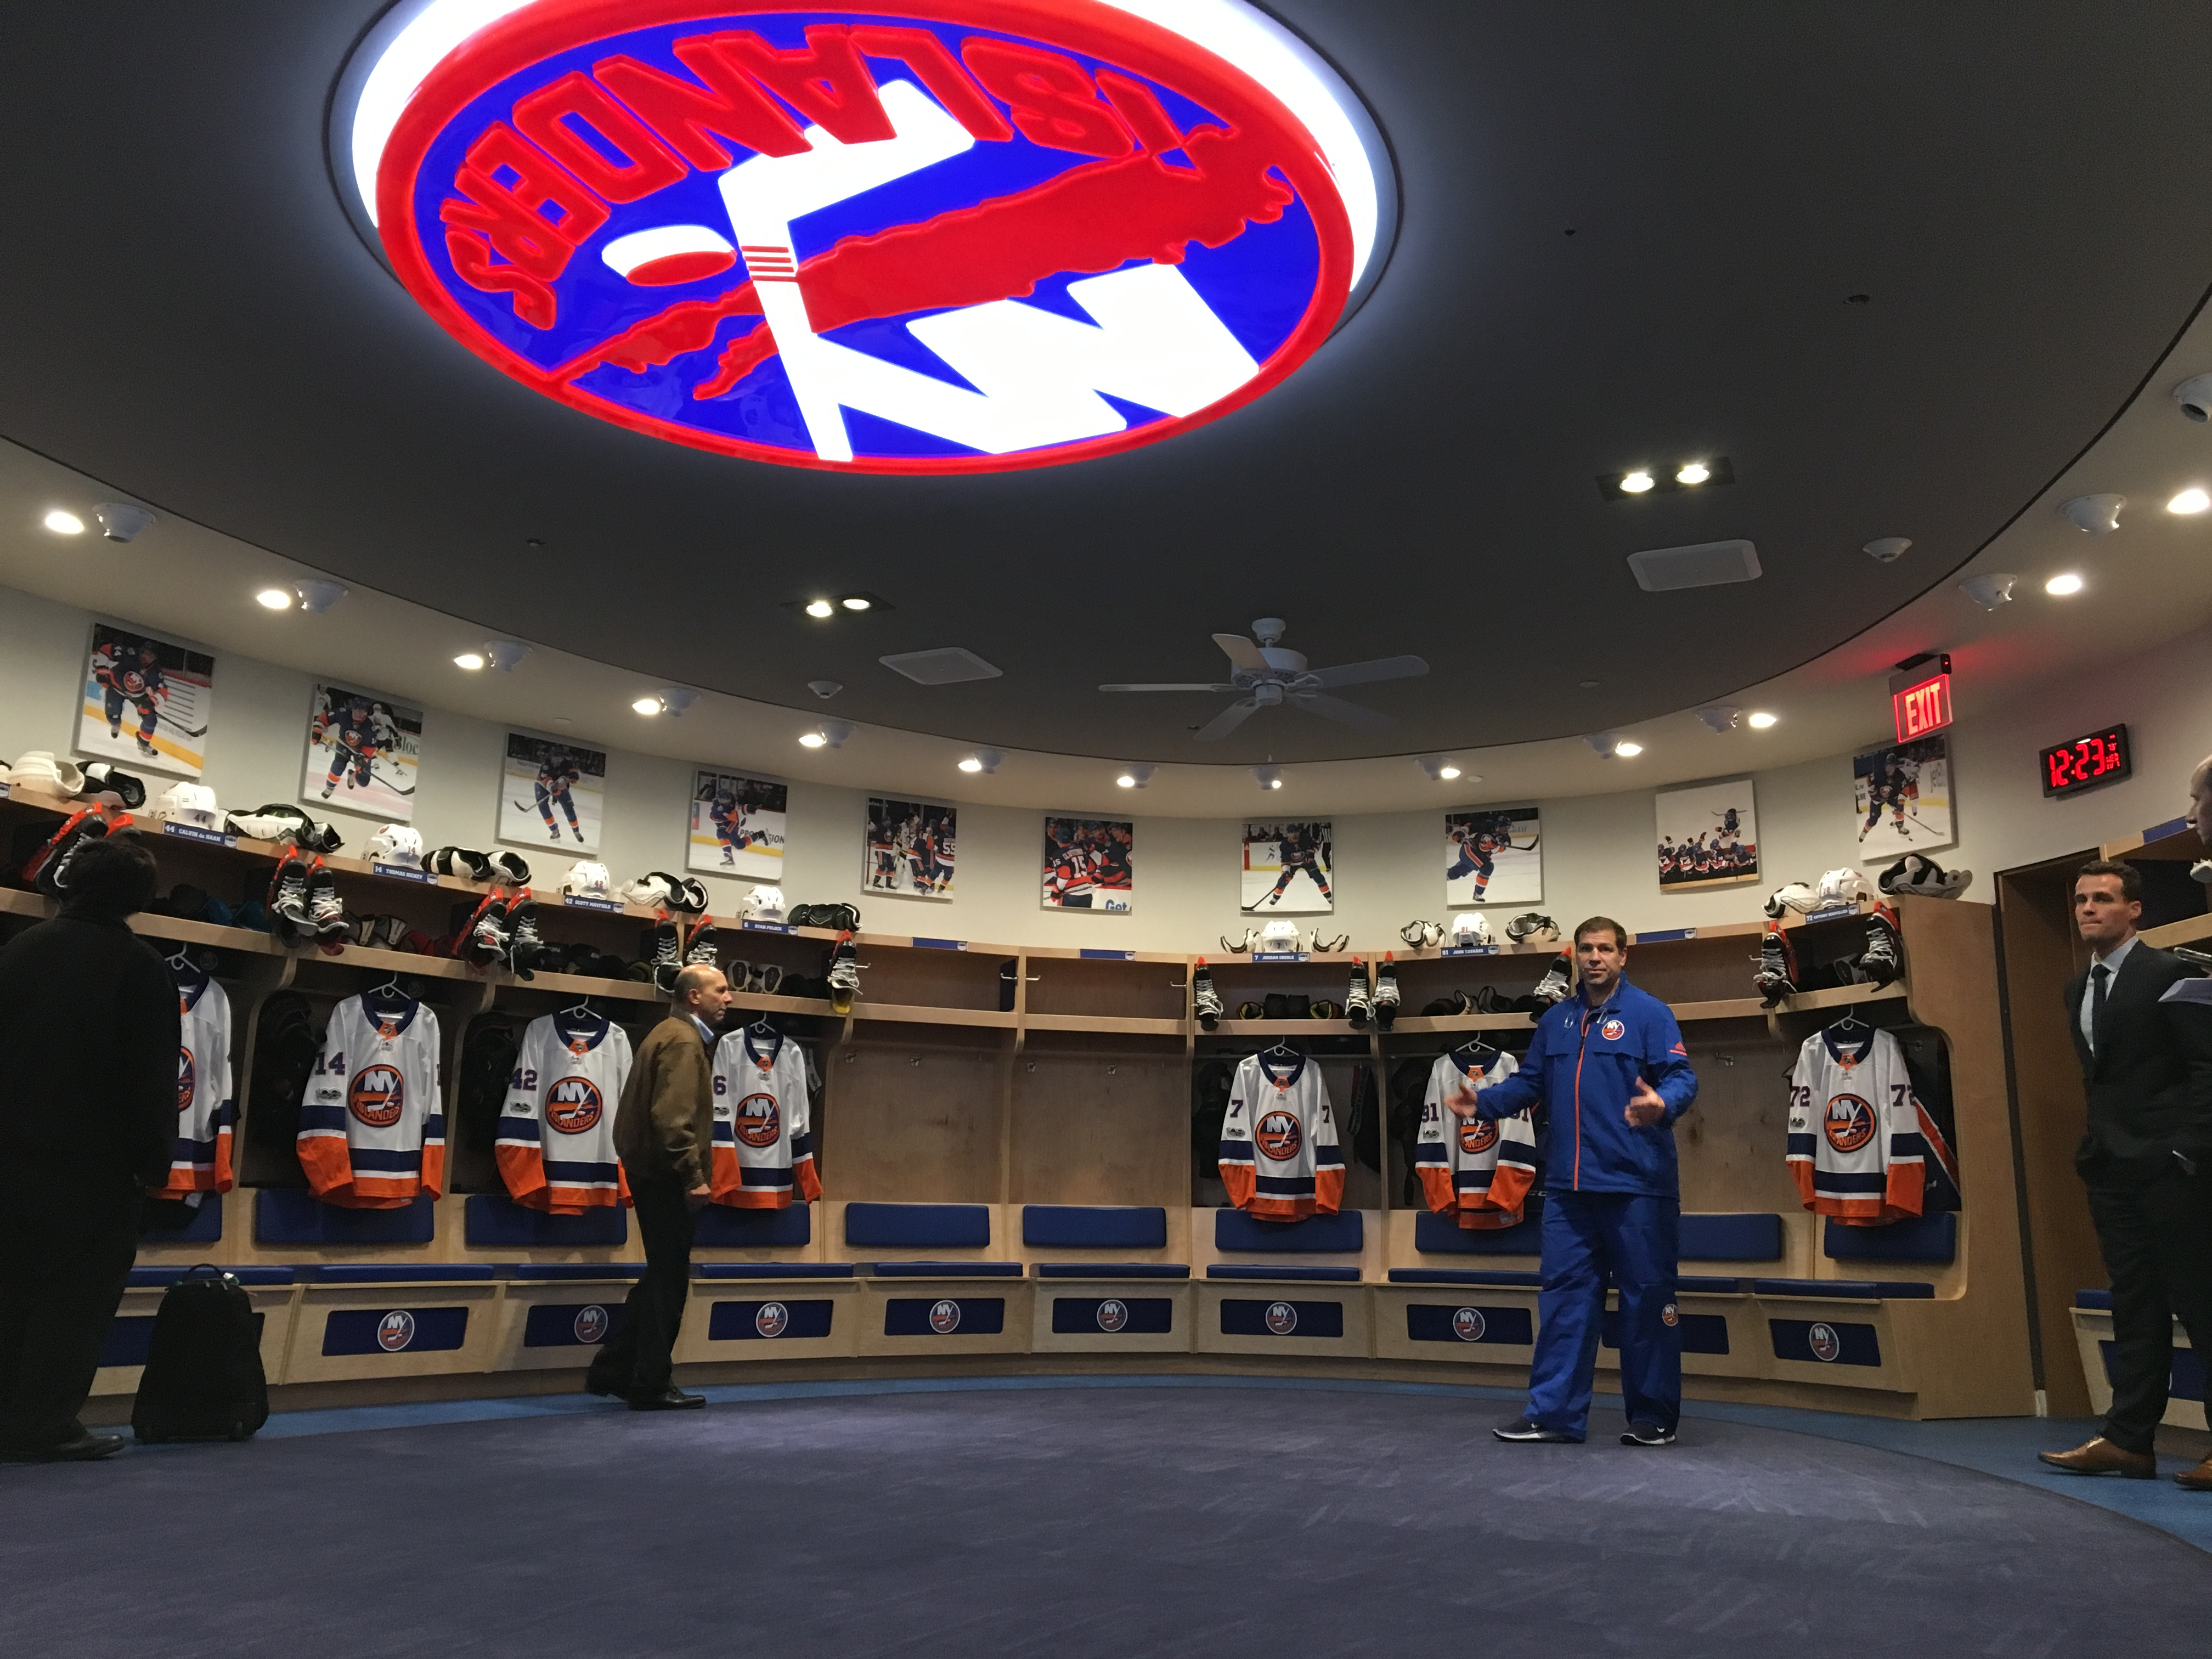 Renovated Practice Facility a Glimpse of What Could be for Islanders at Belmont